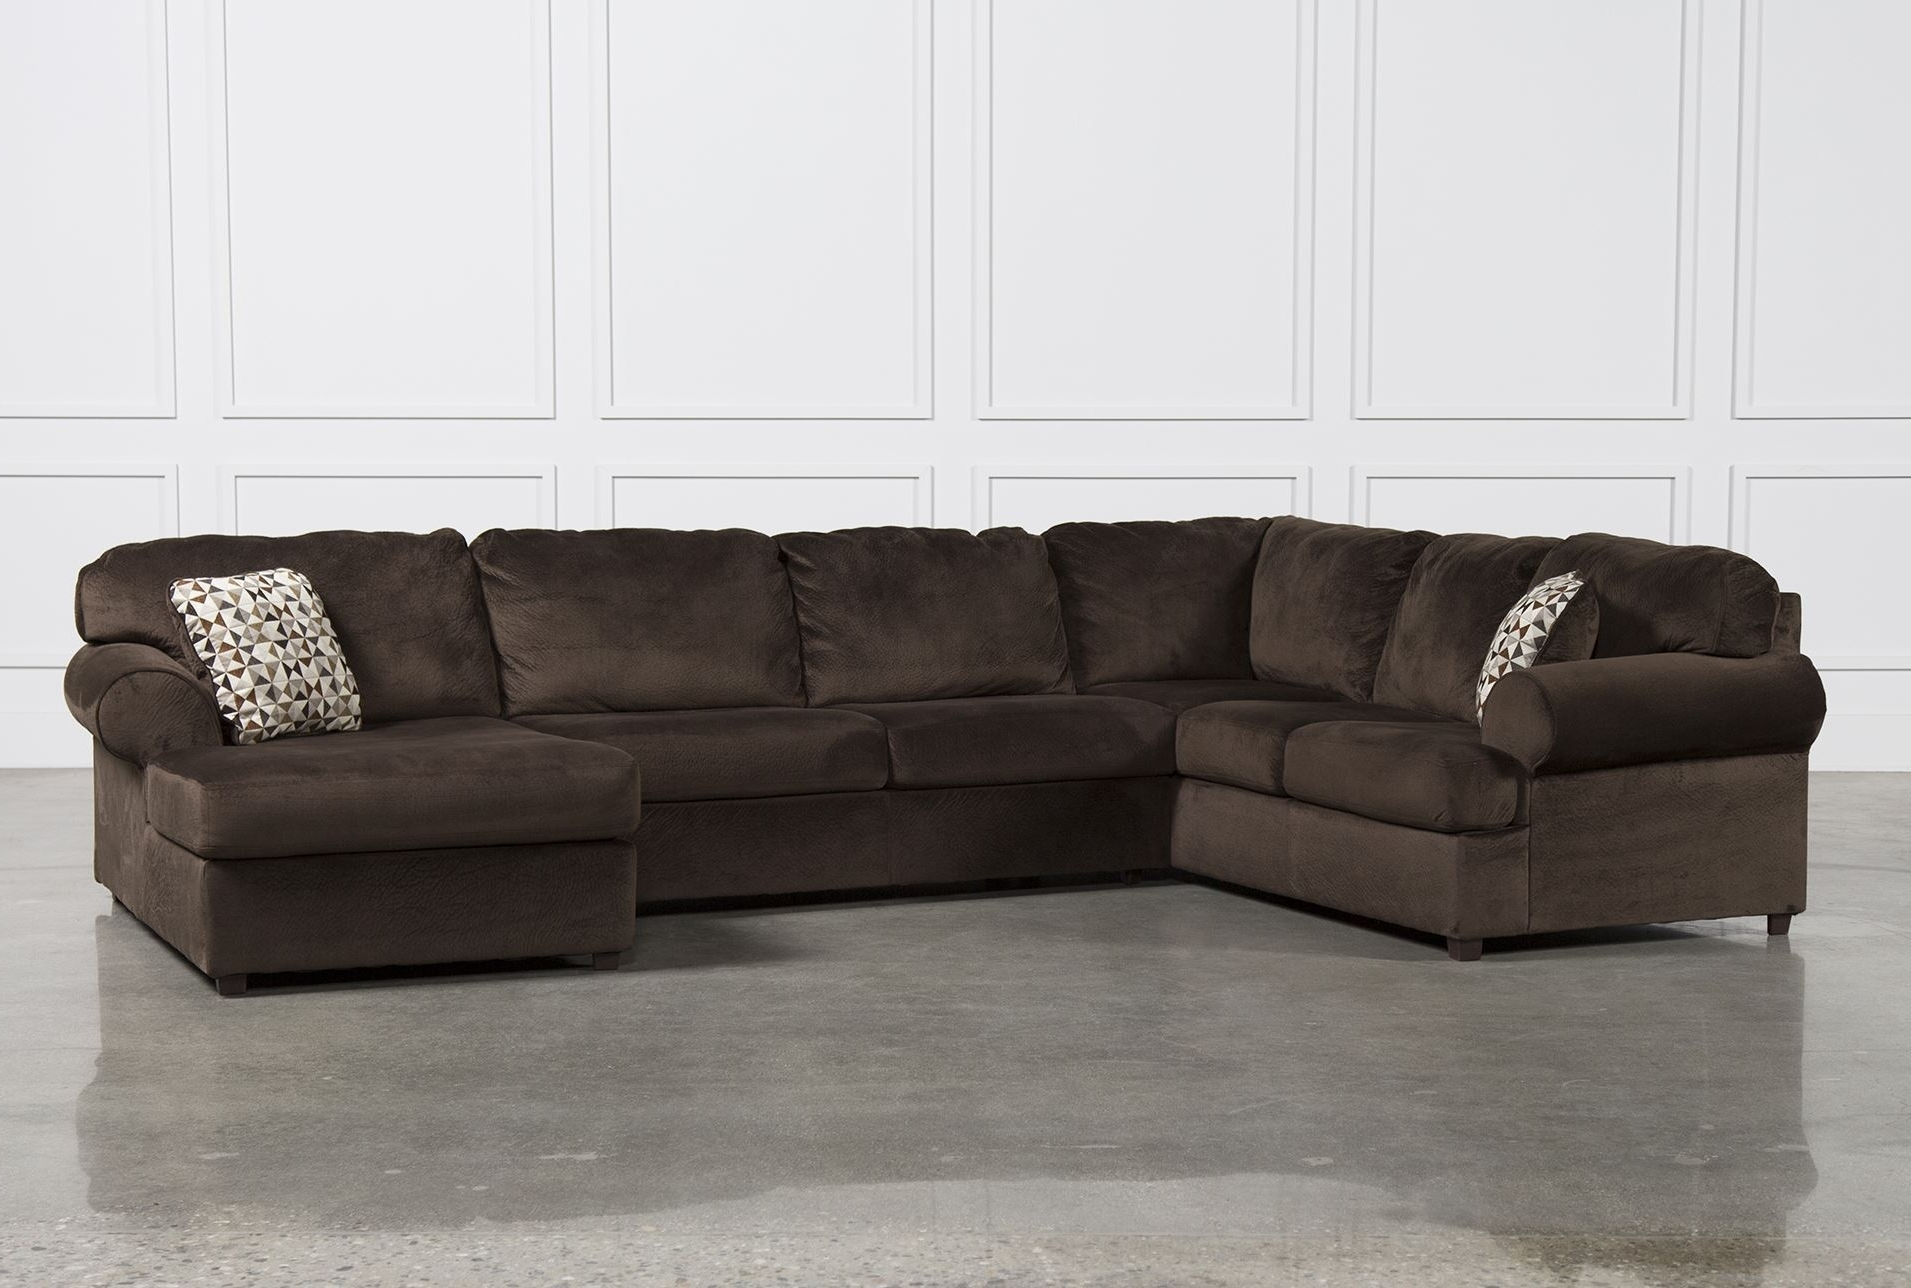 Jane Bi Sectional Sofa Regarding Most Recently Released Victoria Bc Sectional Sofas (View 19 of 20)